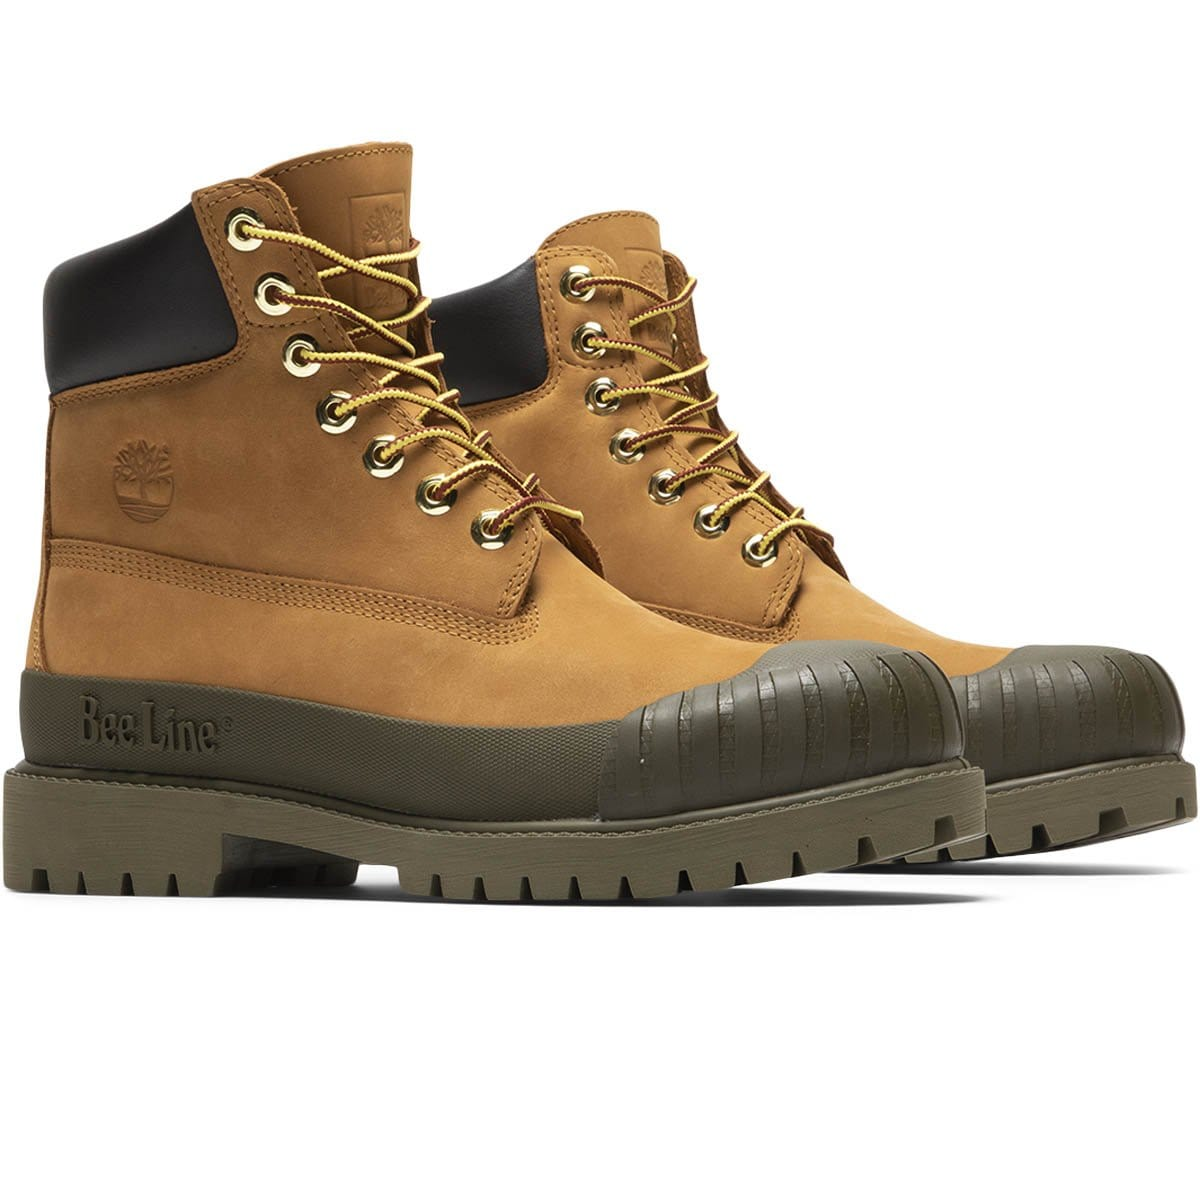 "Timberland Shoes x Bee Line PRM 6"" RUBBER TOE BOOT"